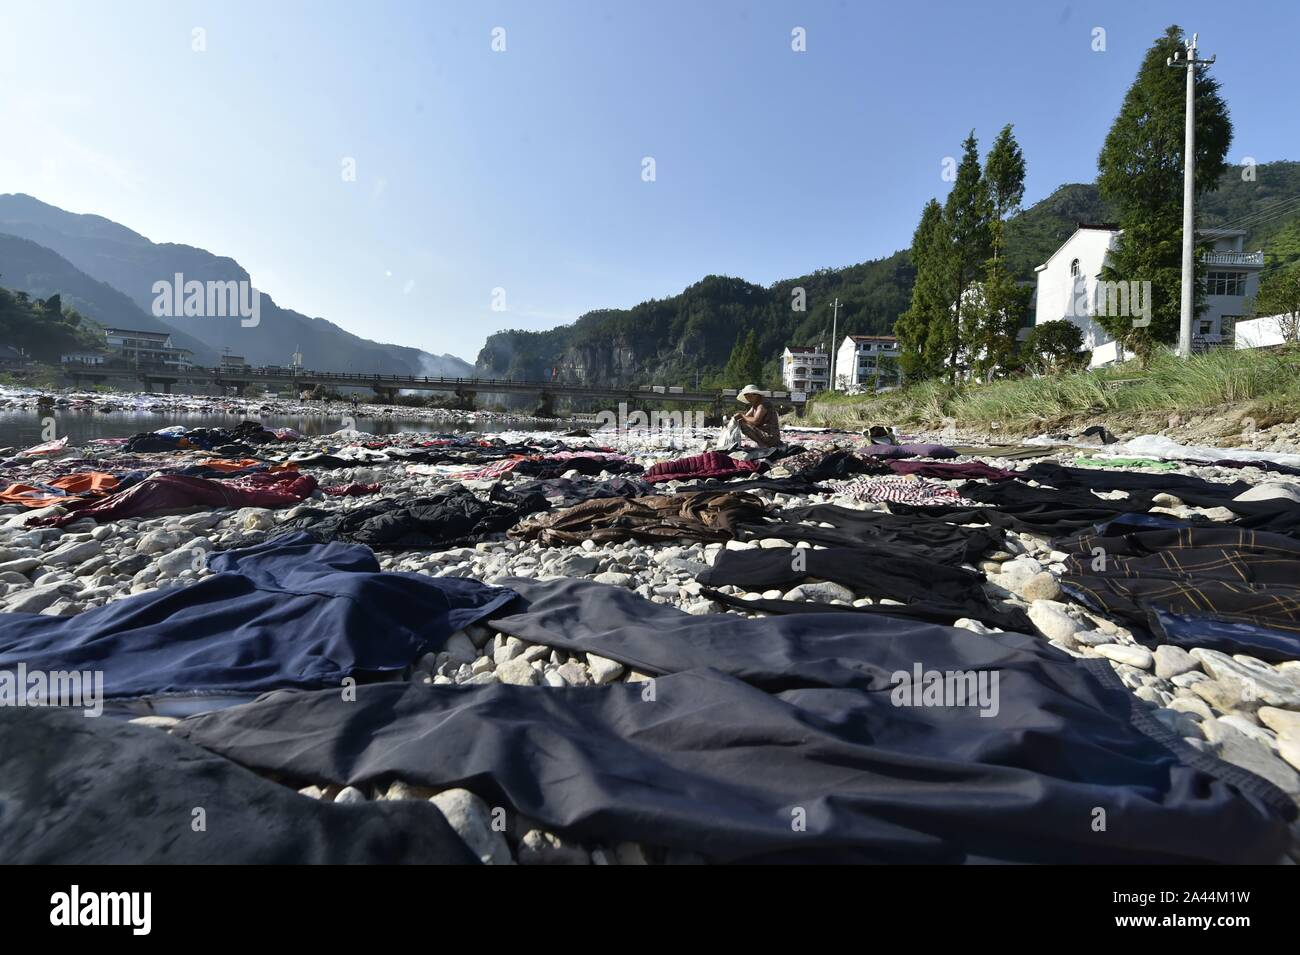 Chinese villagers put their clothes, sheets, and quilts under the sun after floodwater due to heavy rainstorm caused by the Typhoon Lekima, the 9th ty Stock Photo